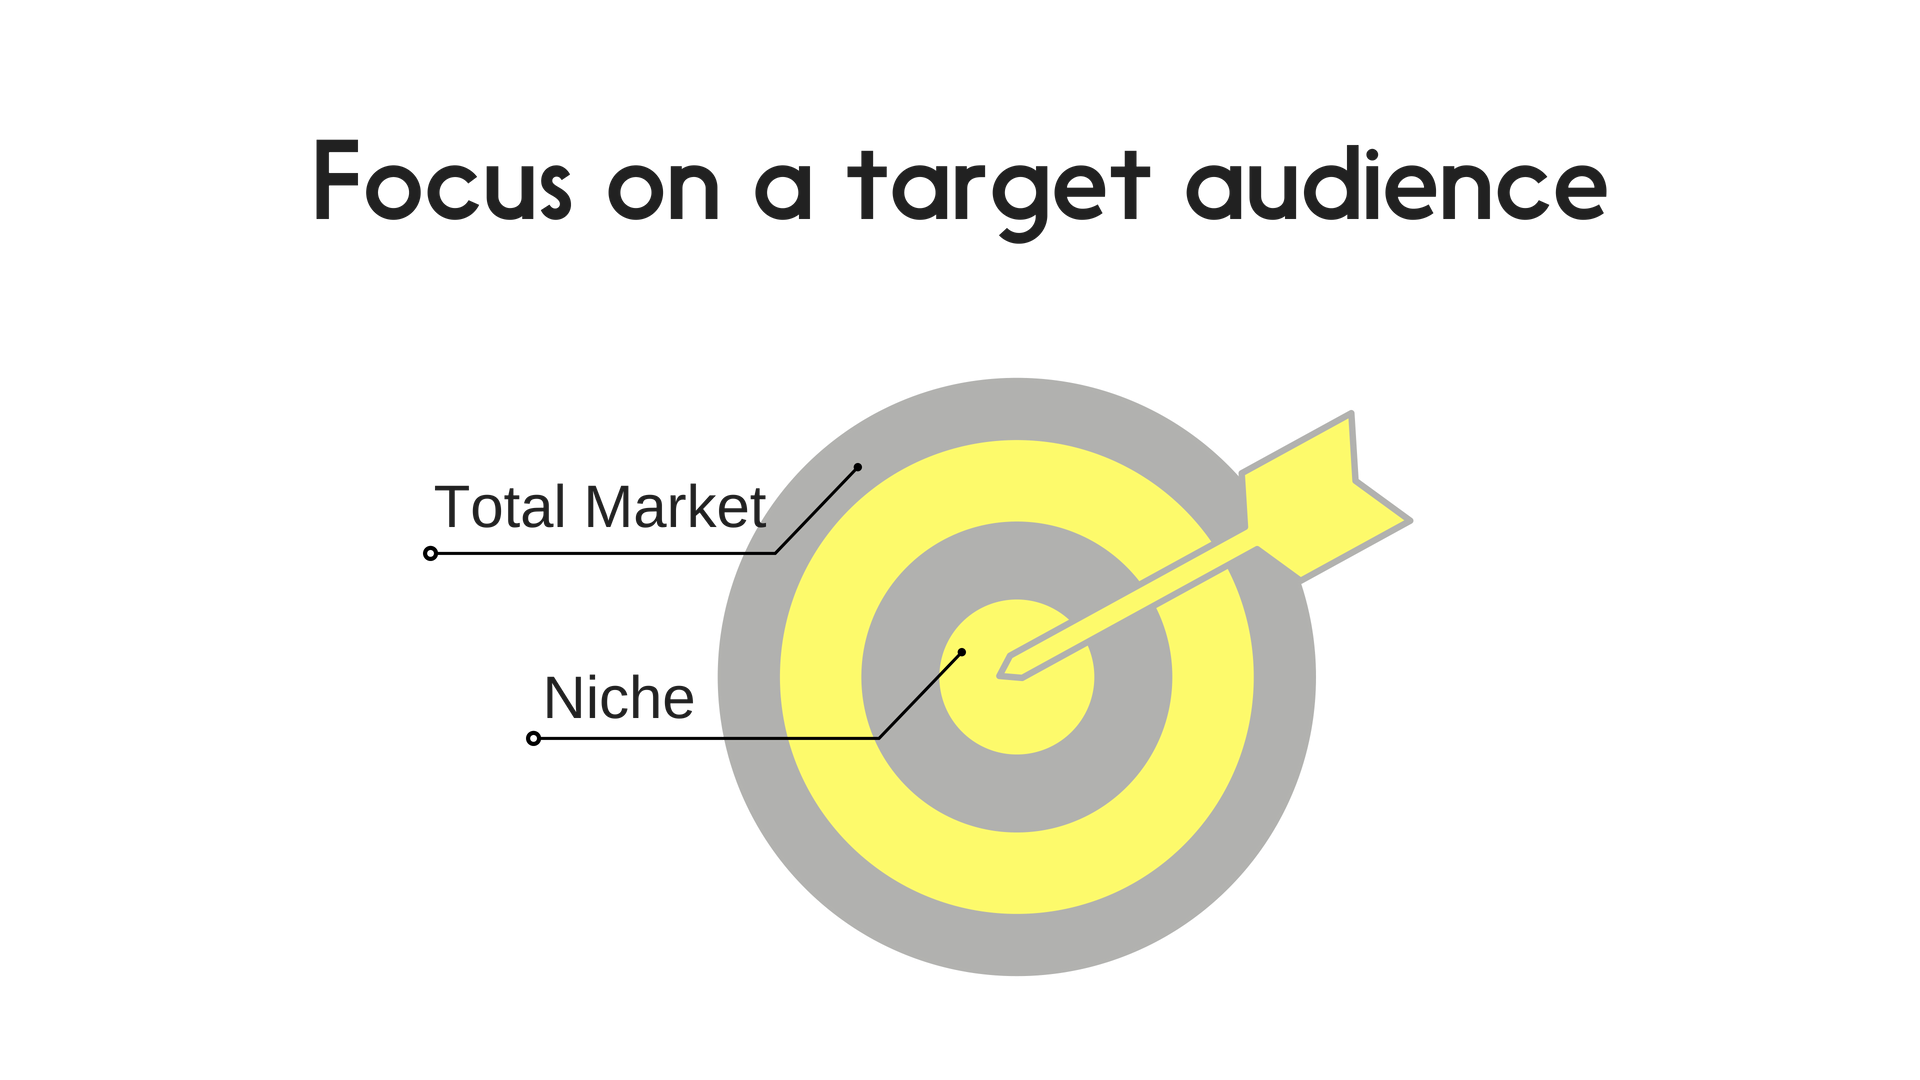 Focus on a target audience.png